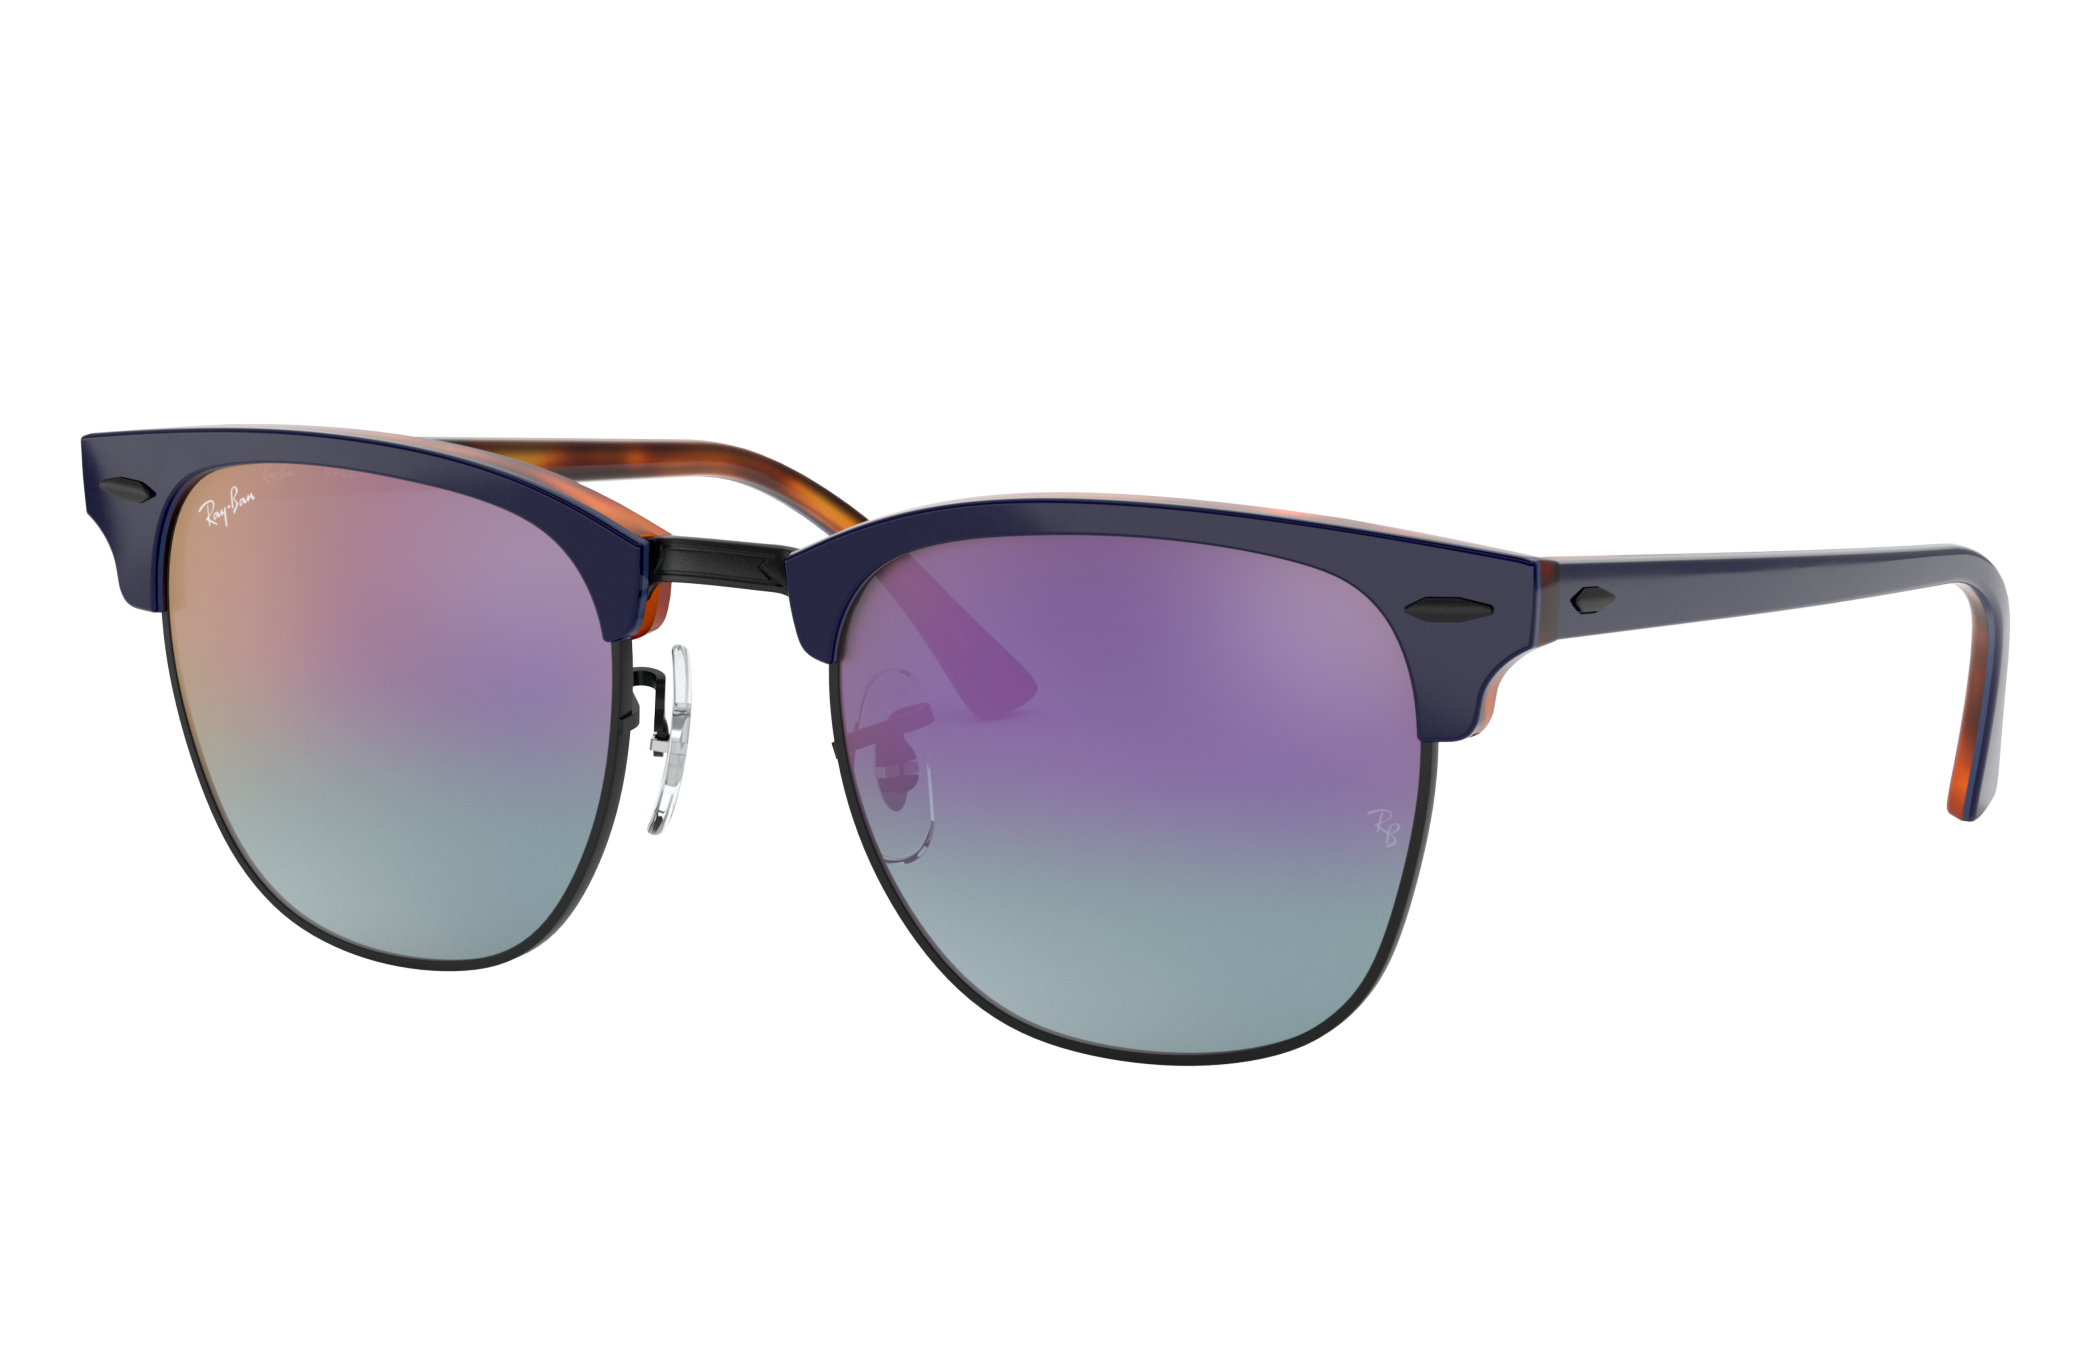 Ray-Ban Clubmaster Color Mix Blue, Blue Lenses - RB3016